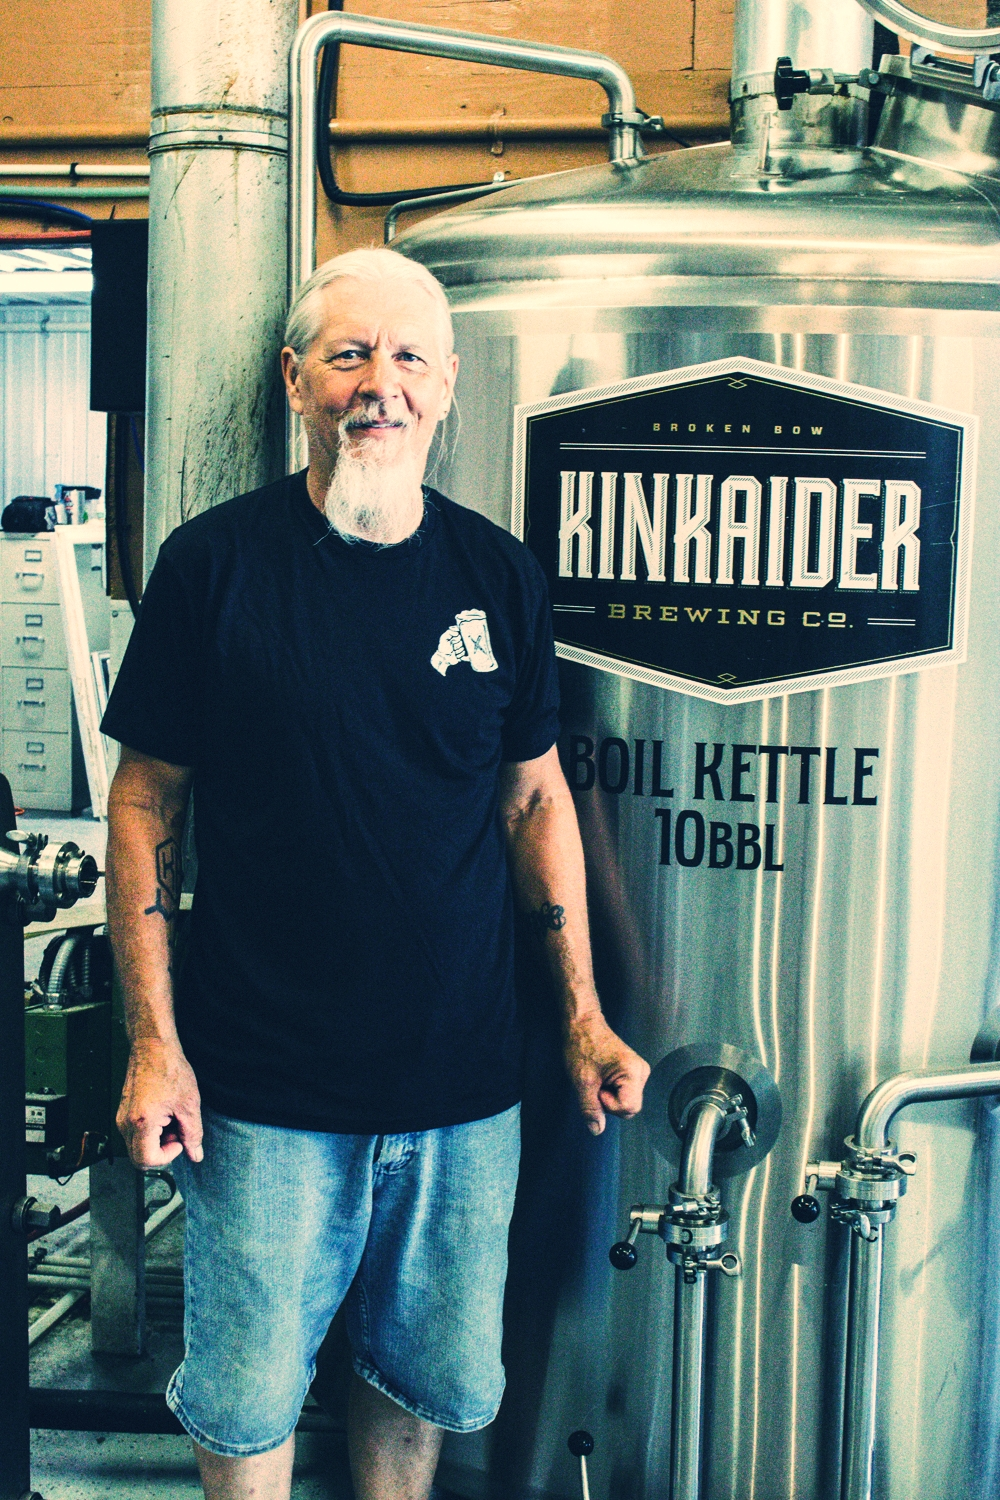 Dan Hodges, brewmaster and co-owner of Kinkaider Brewing Co